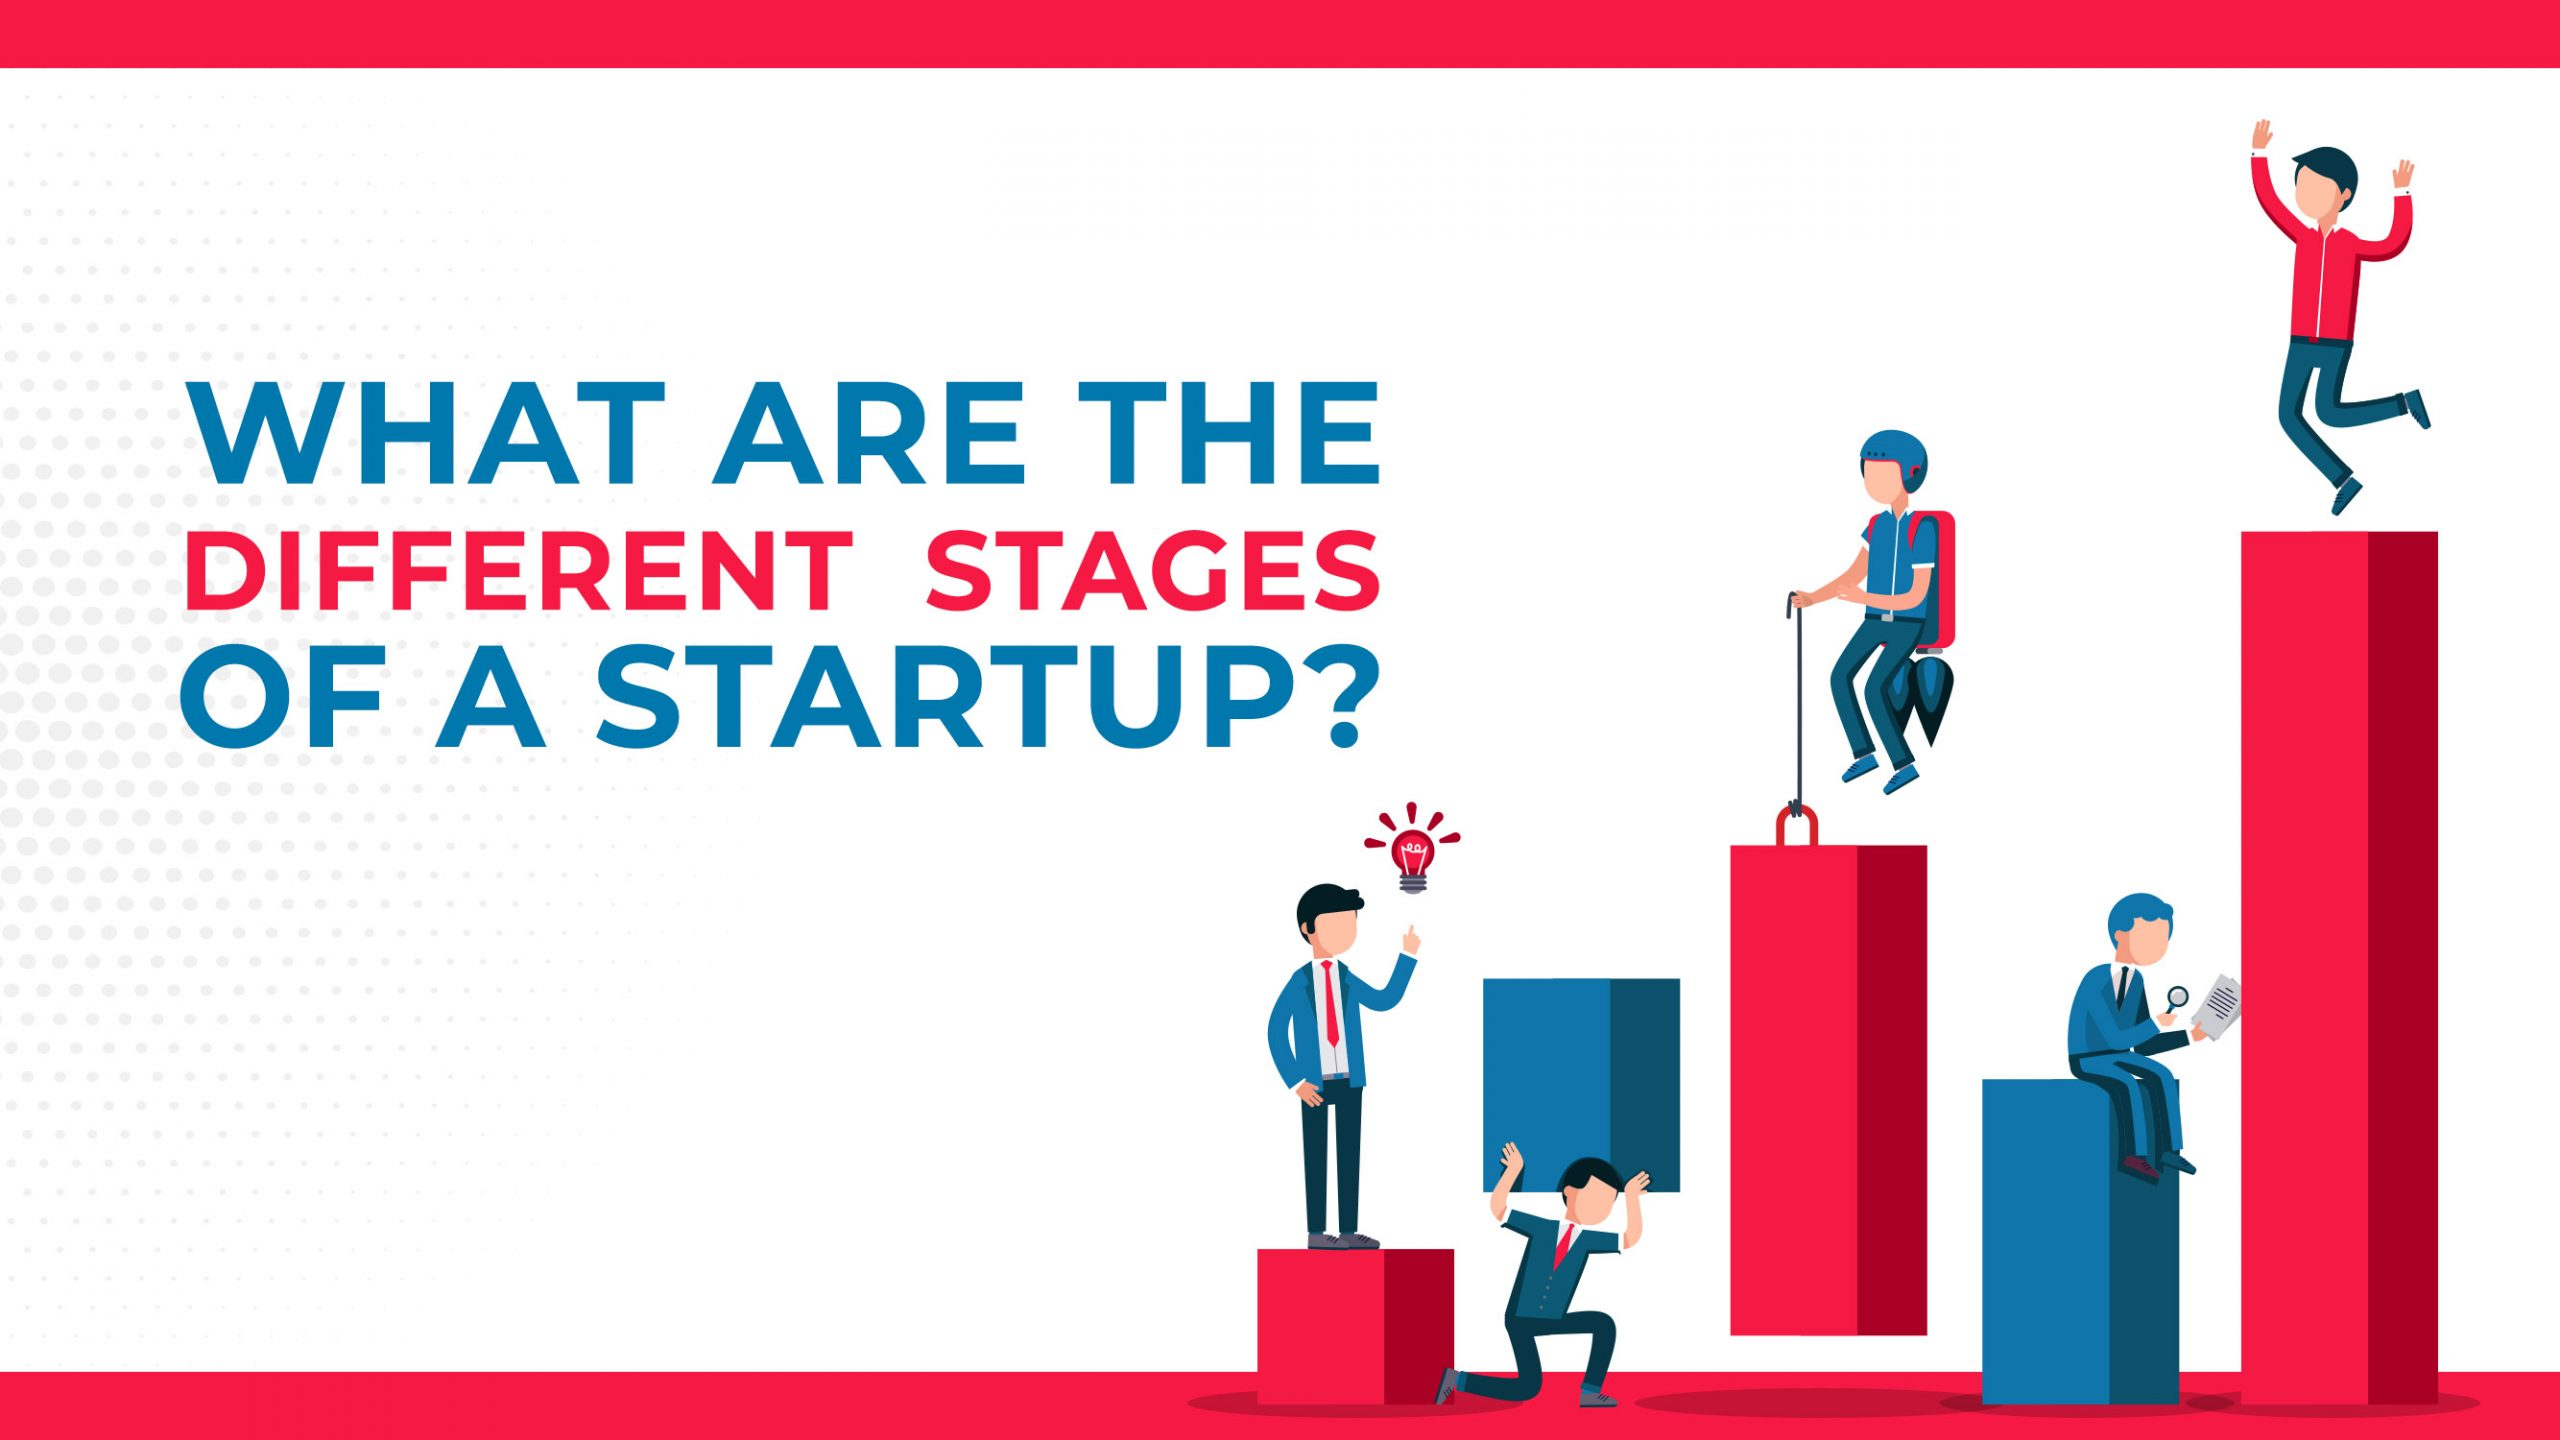 What Are The Different Stages Of A Startup?